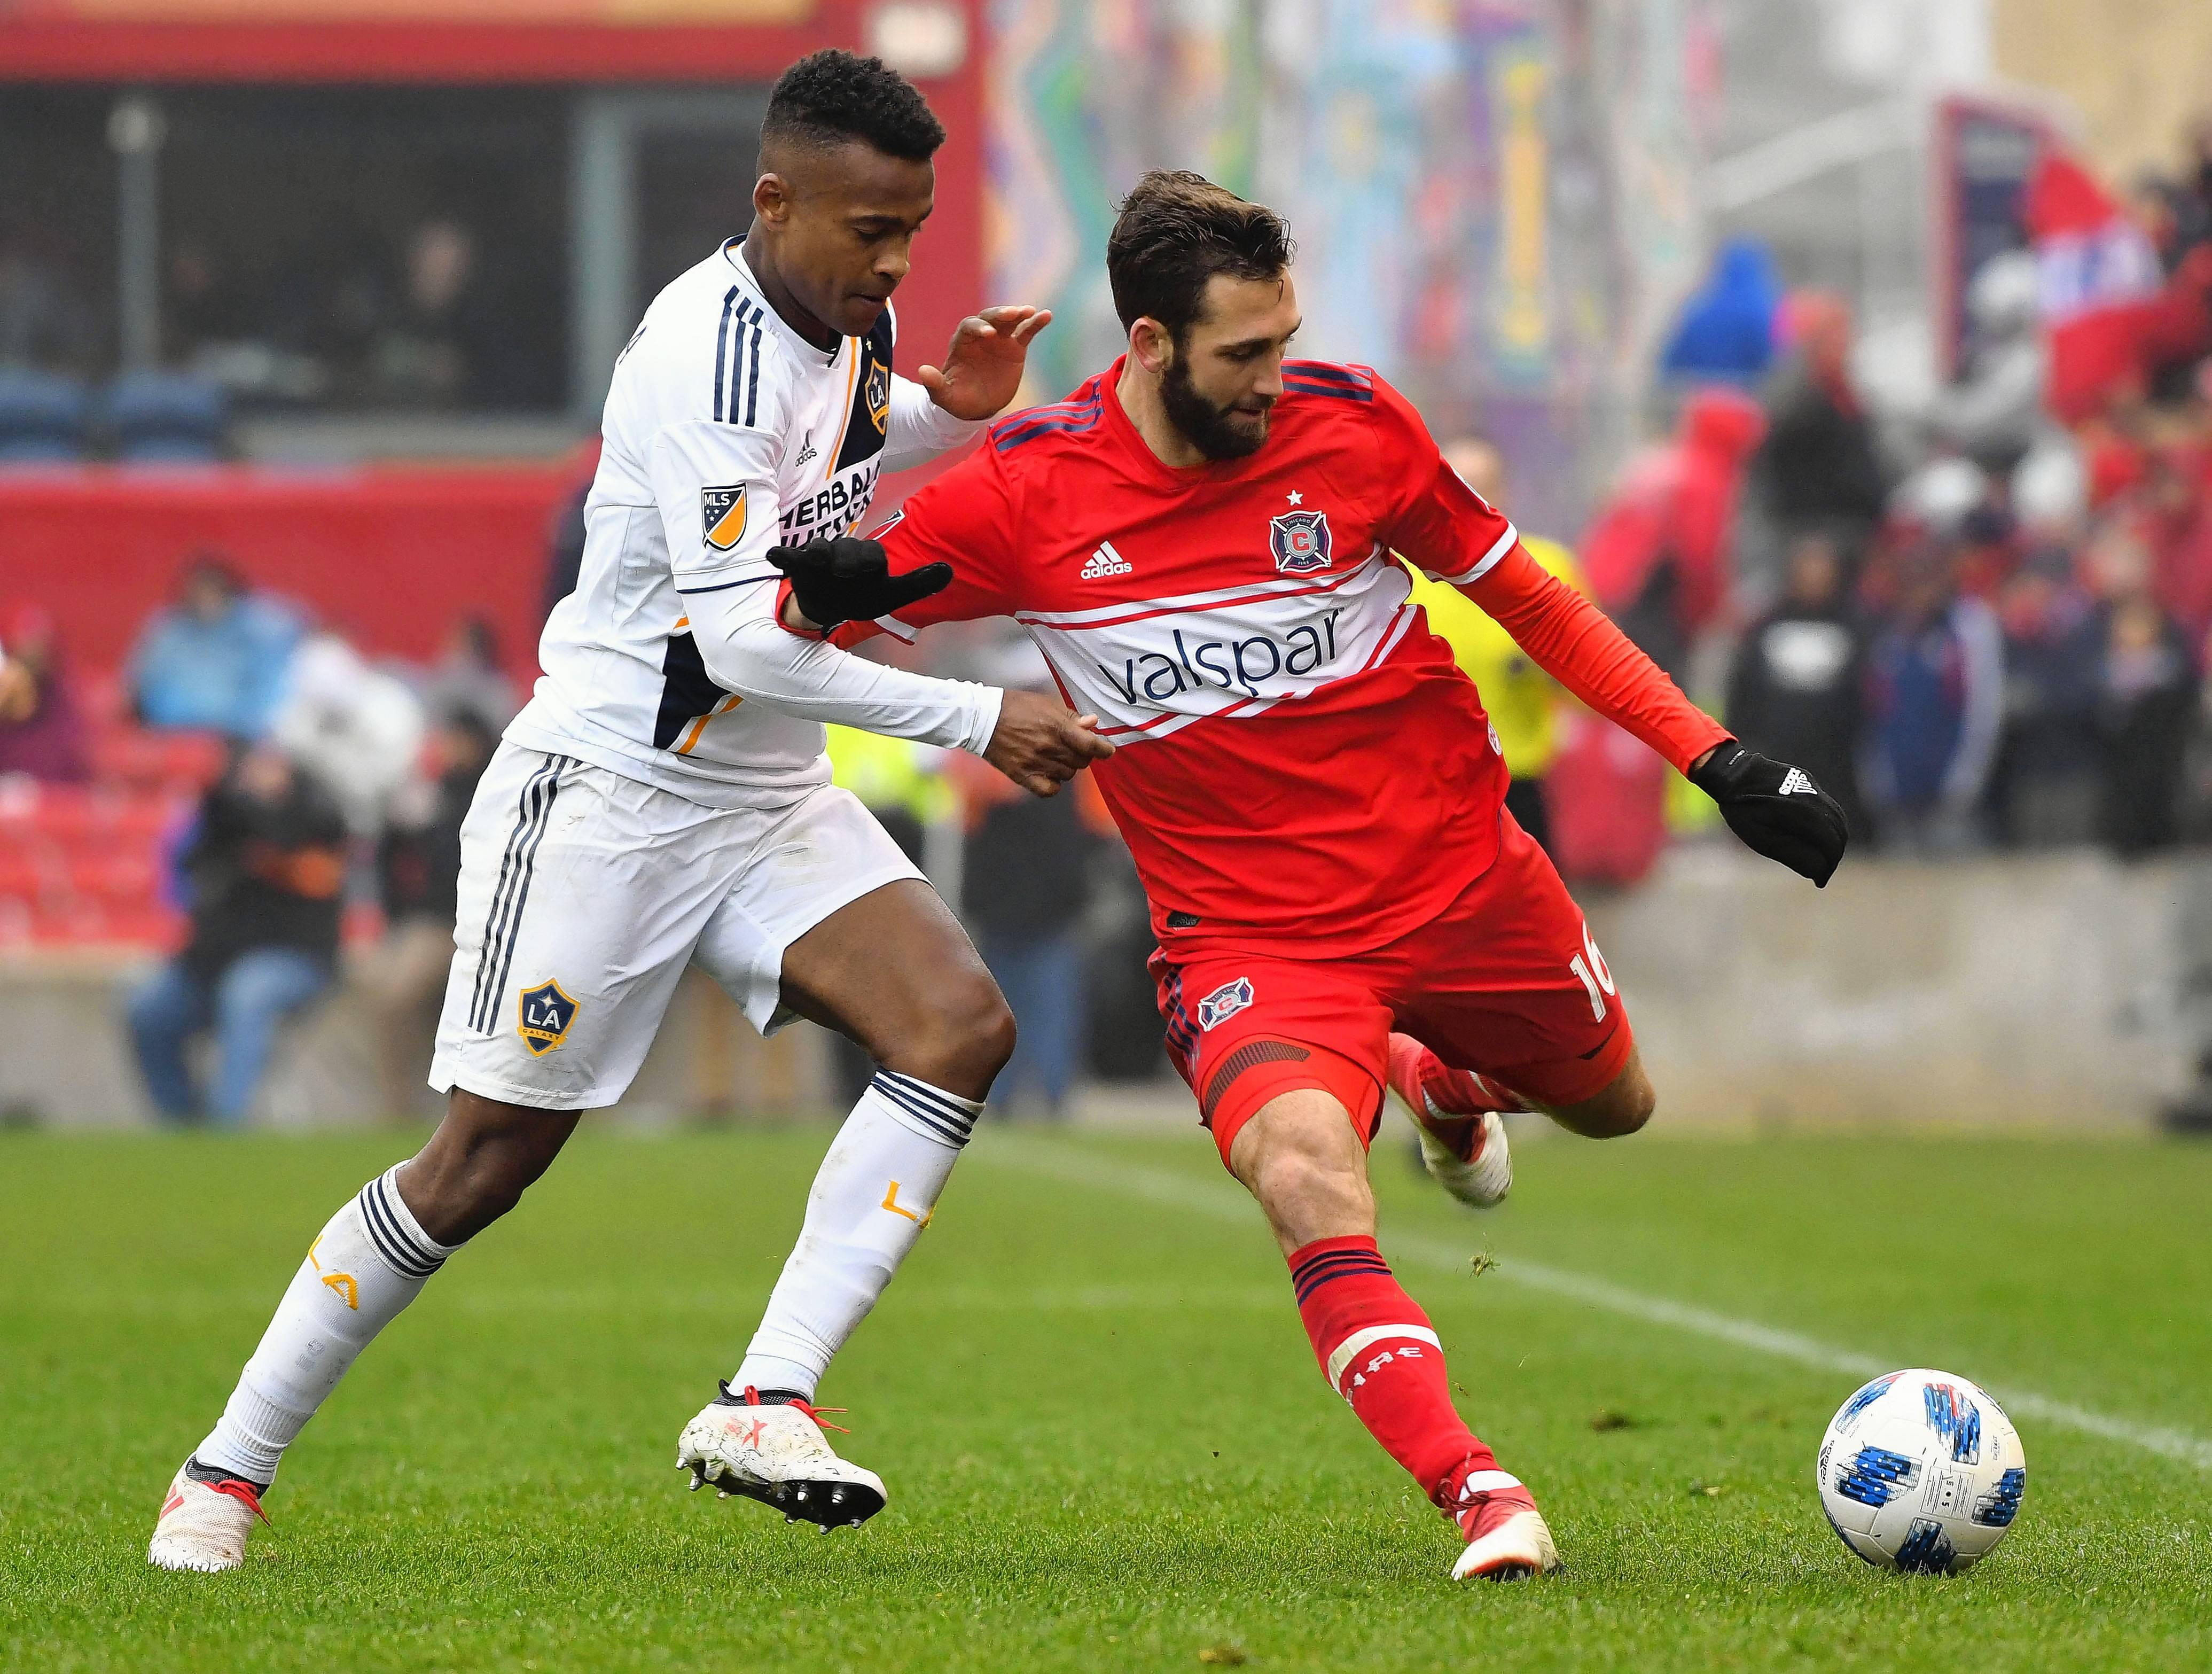 Chicago Fire defender Jonathan Campbell (16) defends against Los Angeles Galaxy forward Ola Kamara (11) during the second half at Bridgeview Stadium on Saturday.